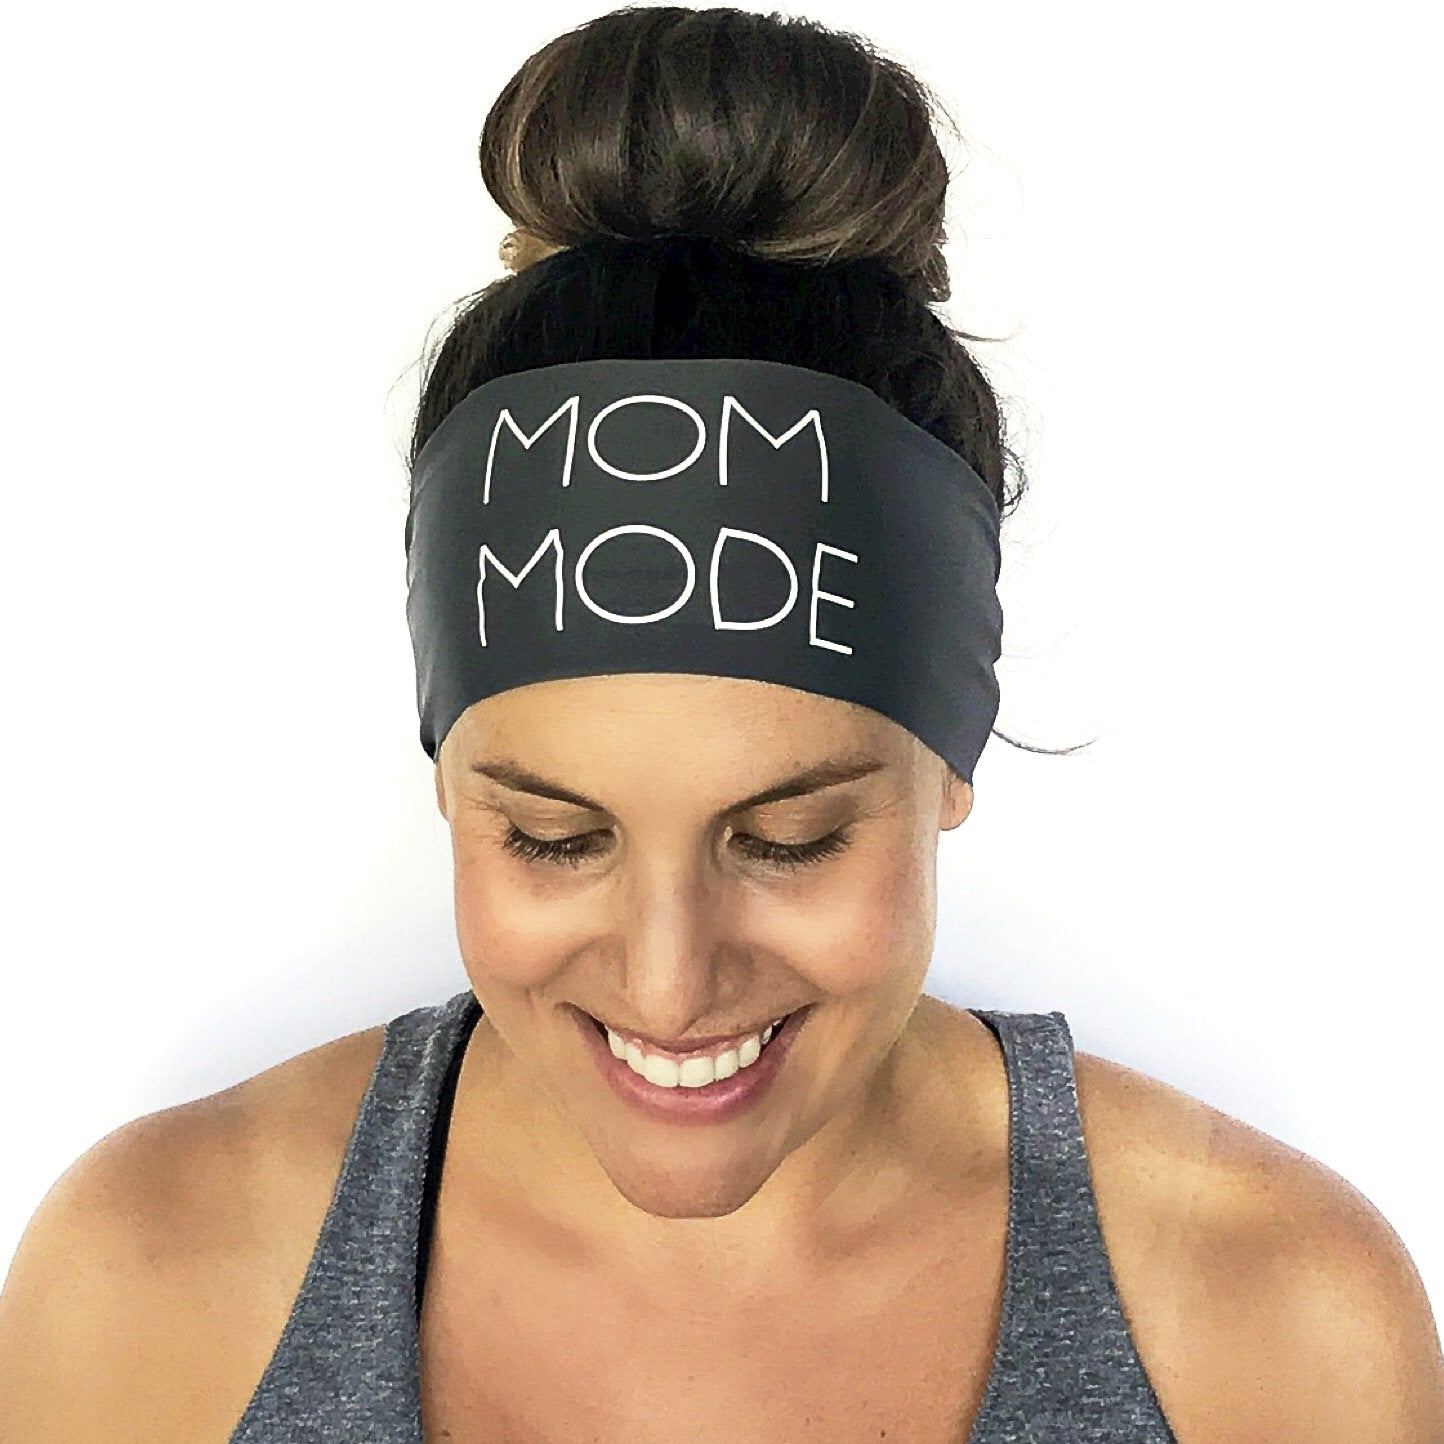 Mom Mode Scripted Headband